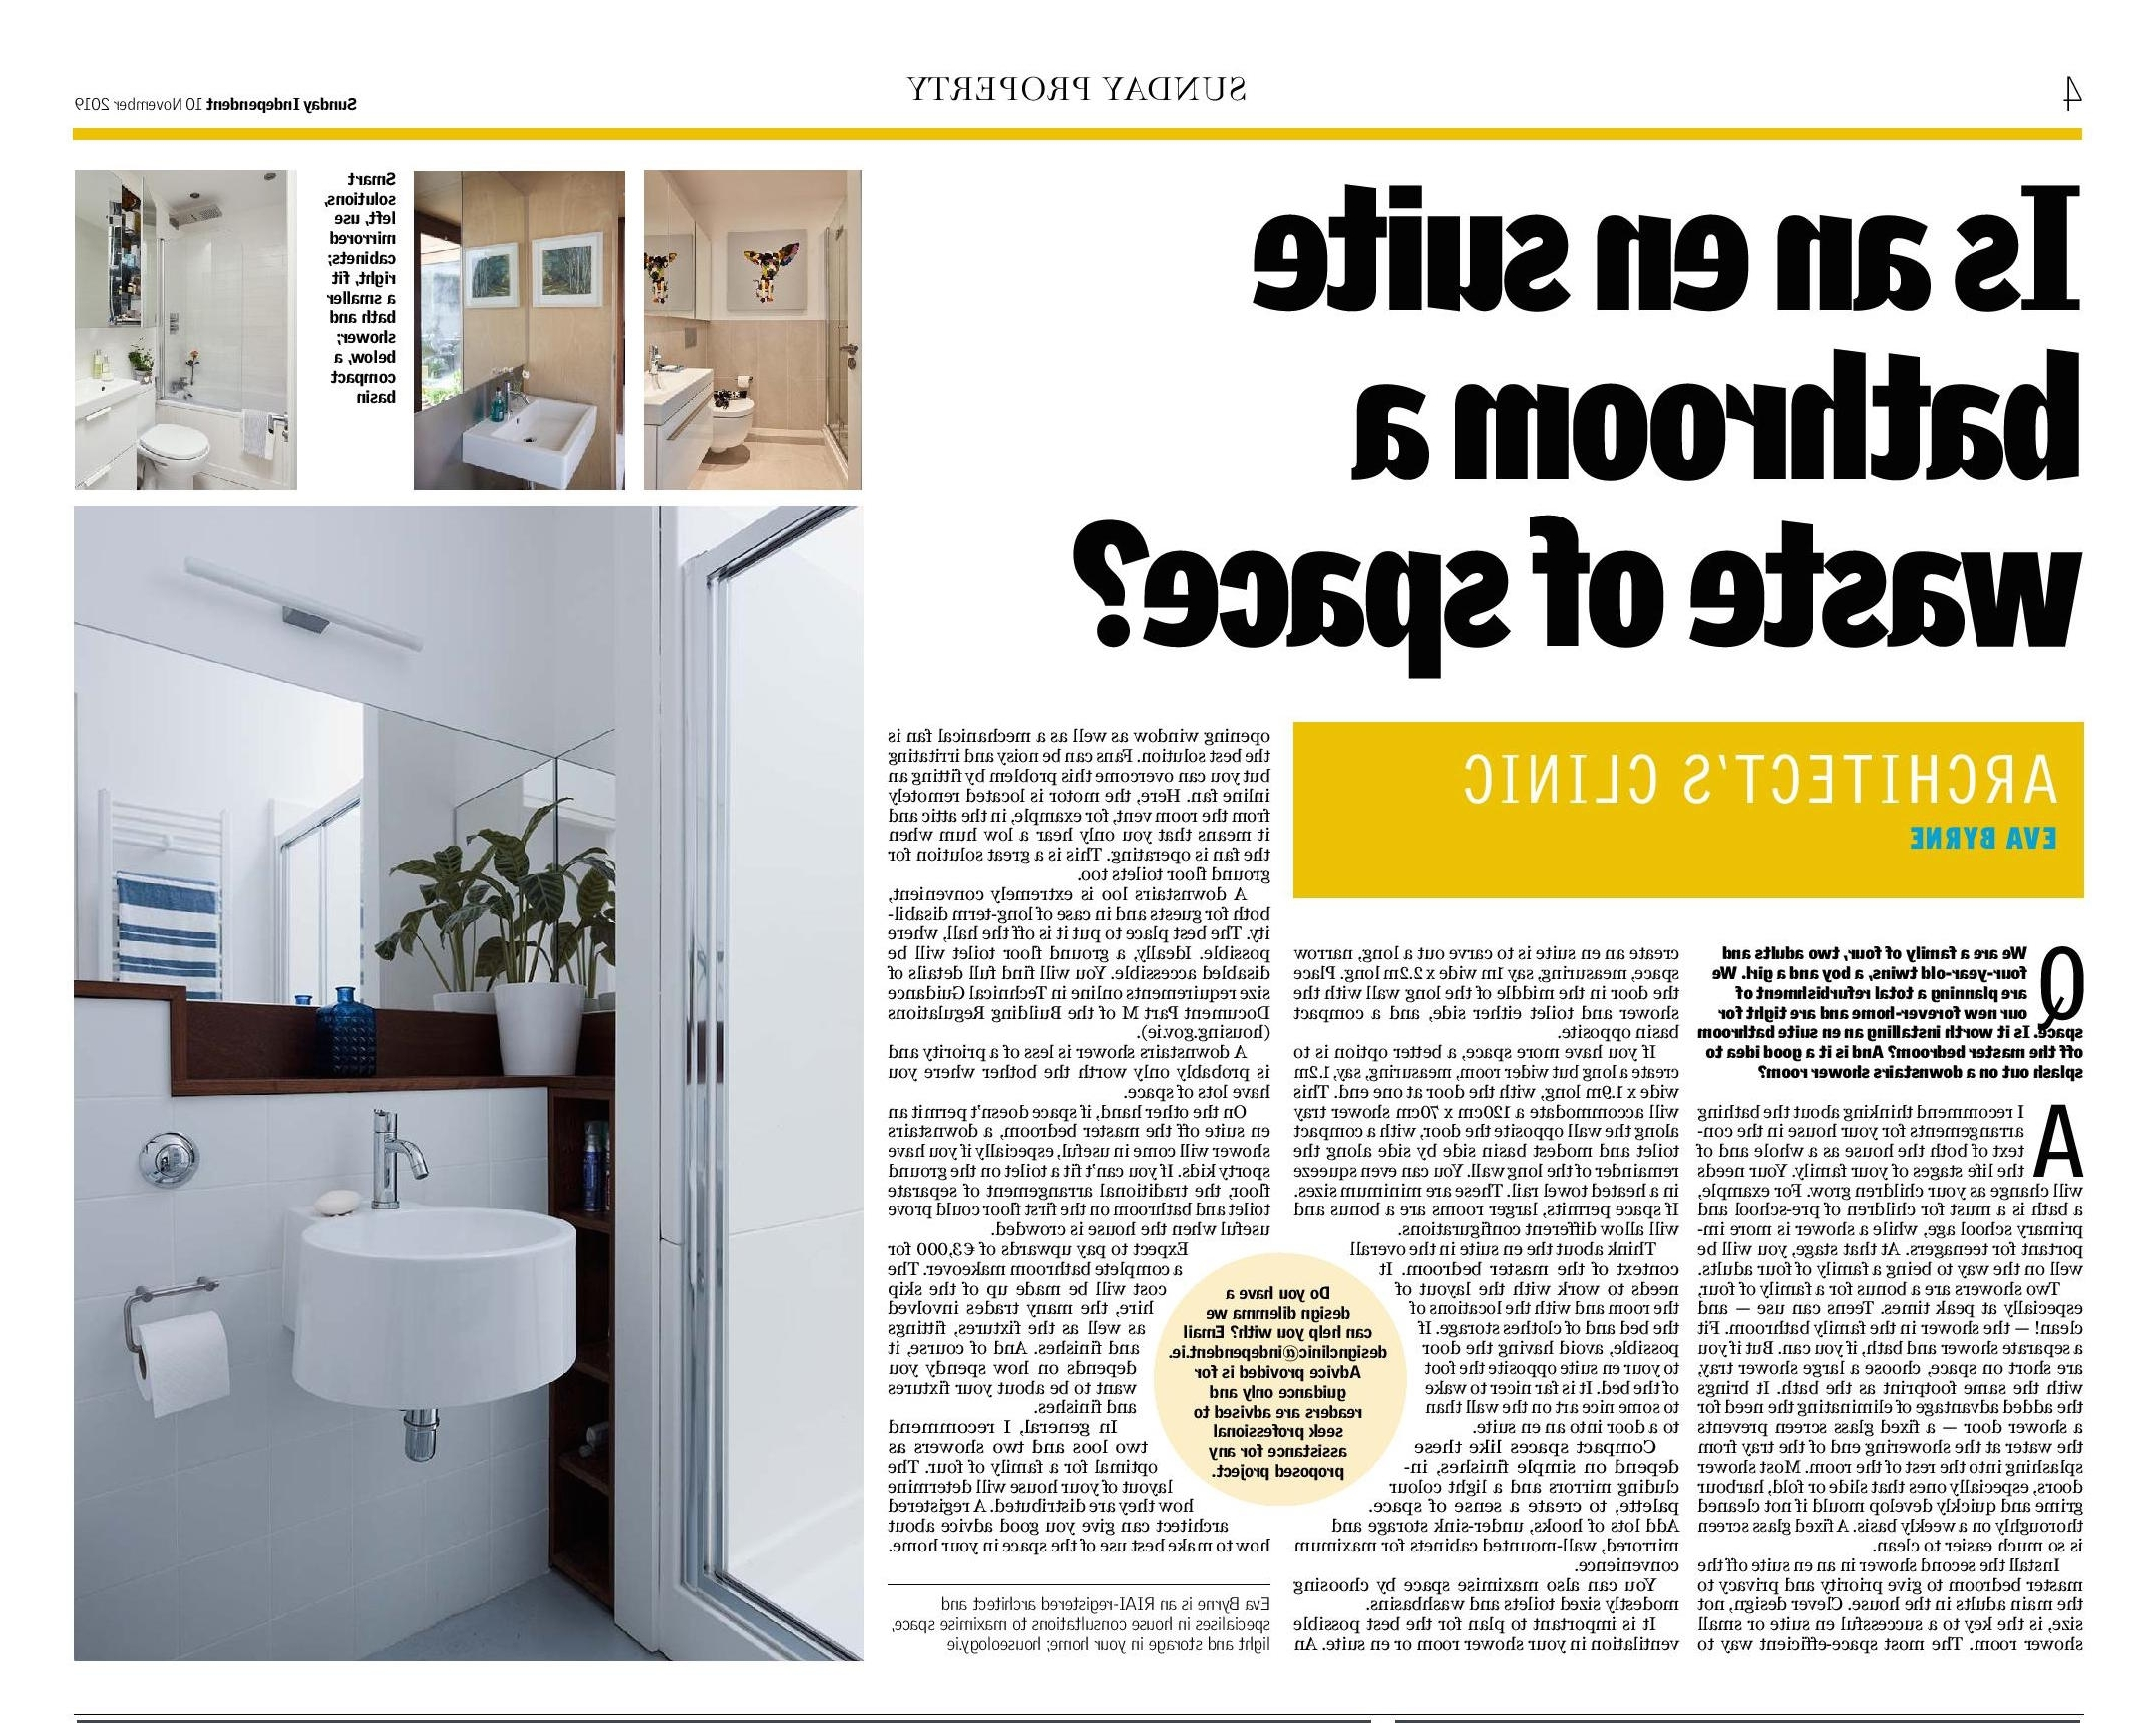 Sunday Independent: Is An En Suite Bathroom A Waste Of Space Small Ensuite Bathroom Ireland